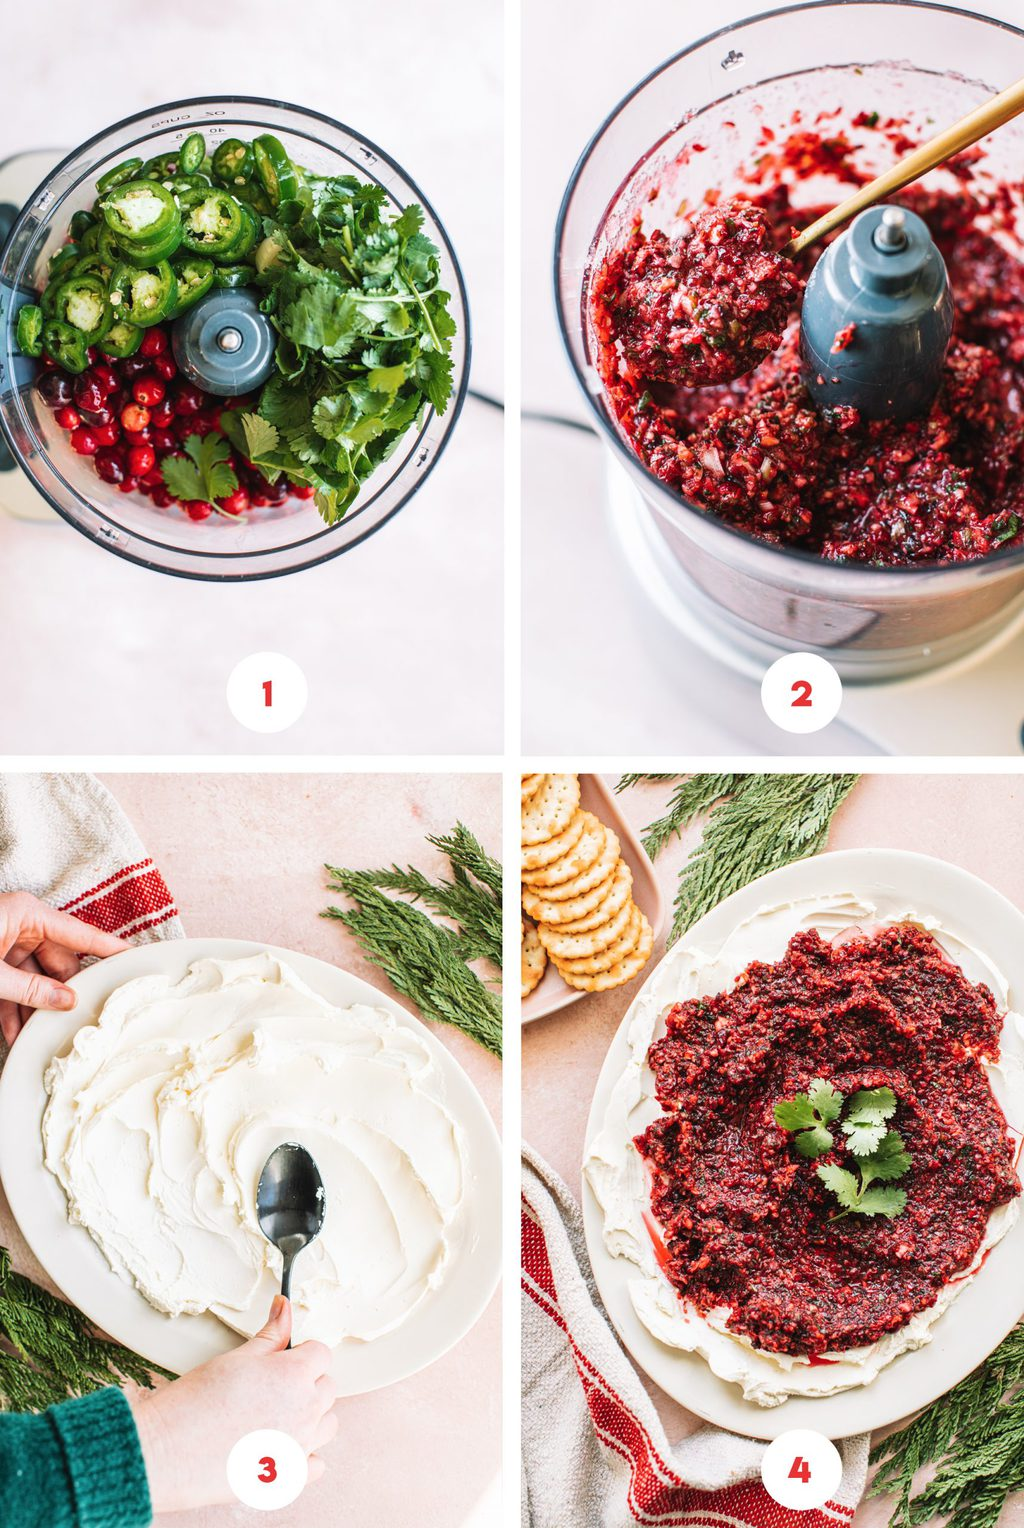 Step by step to make cranberry jalapeno dip.